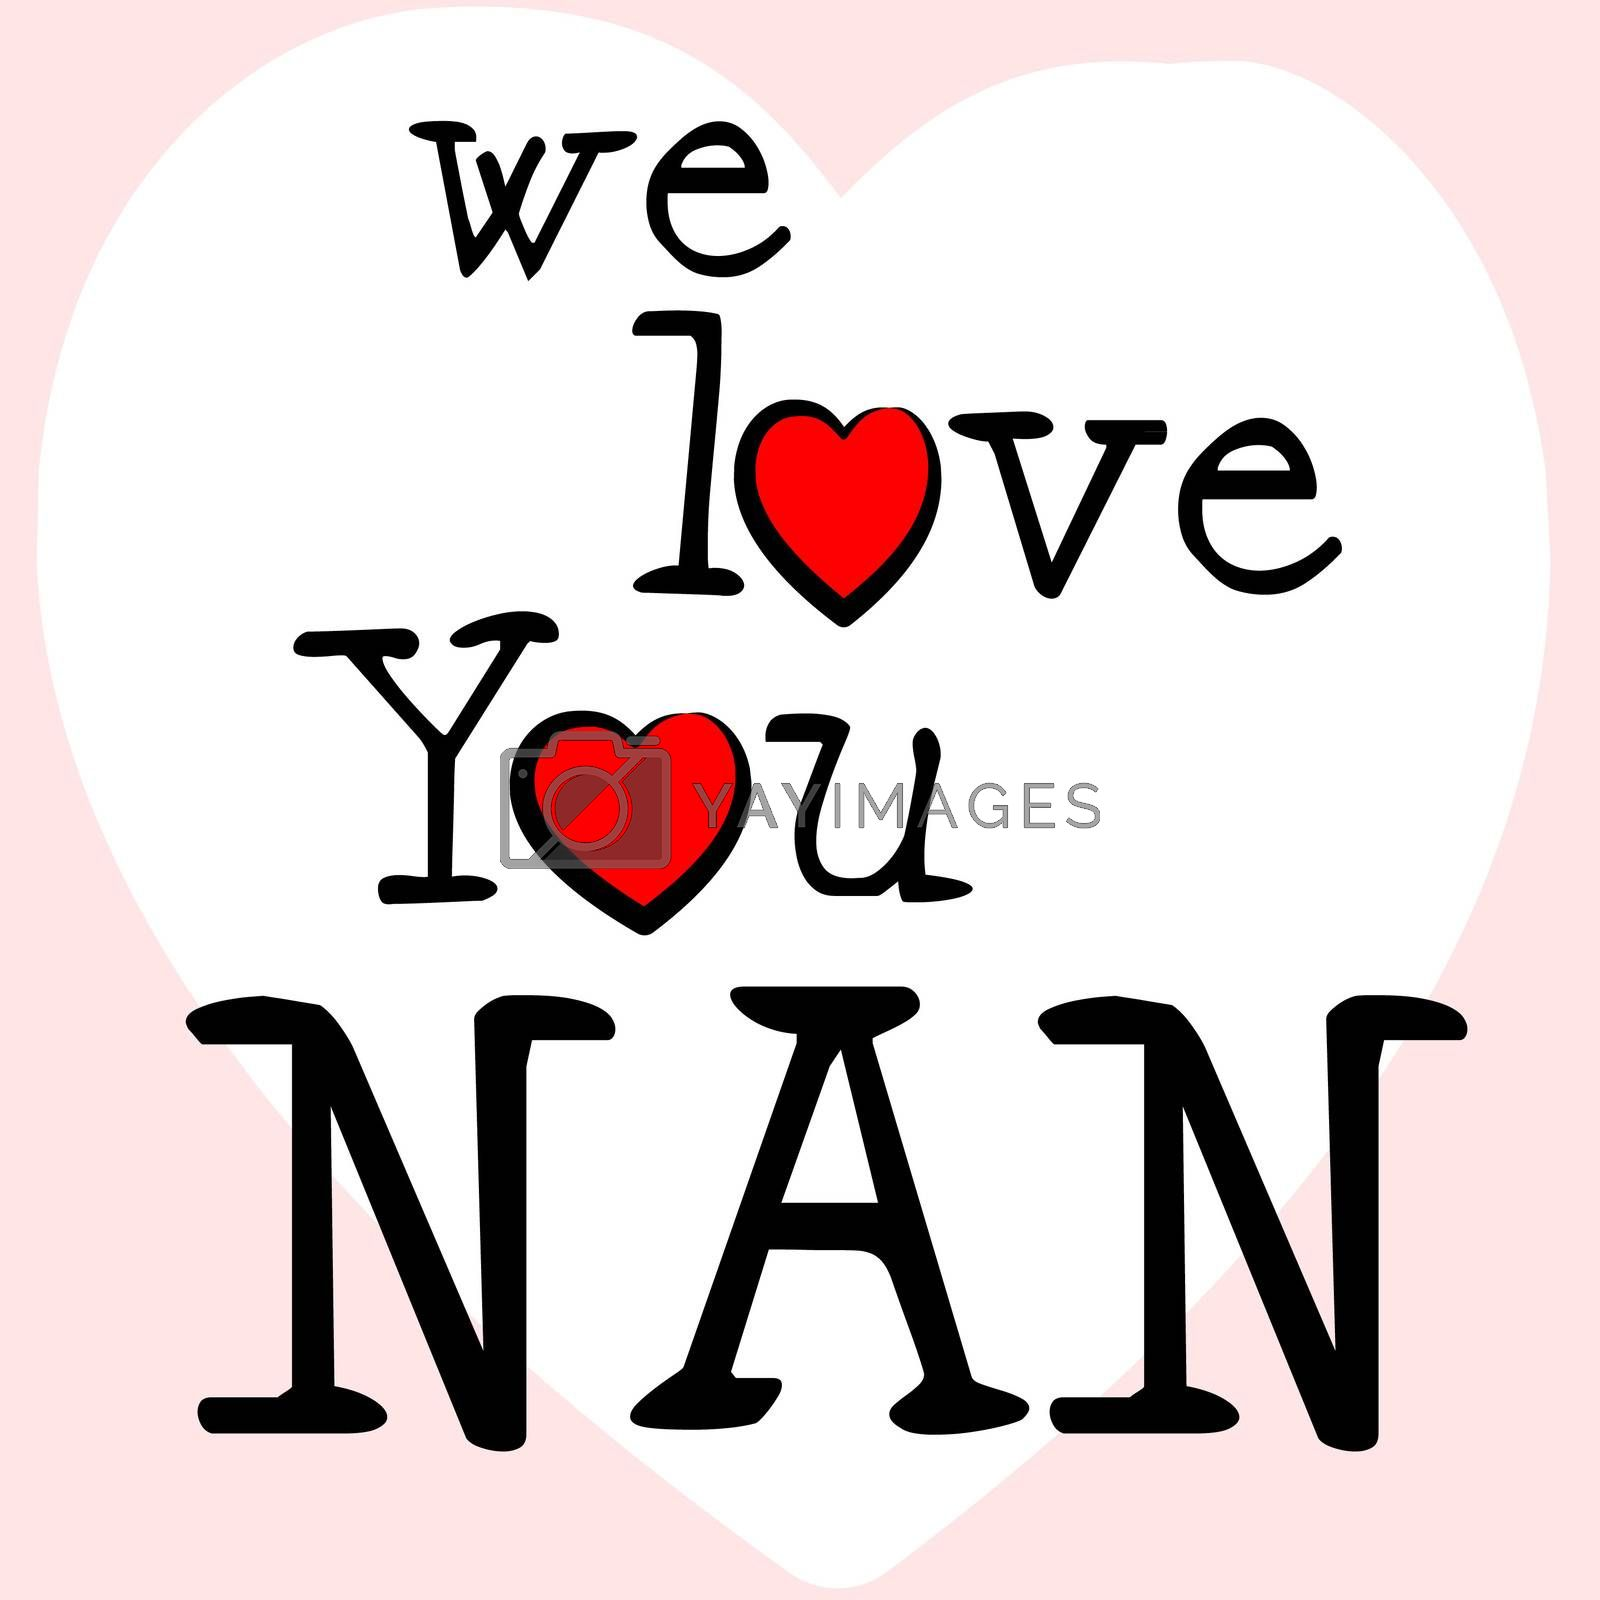 We Love Nan Shows Dating Devotion And Gran by stuartmiles